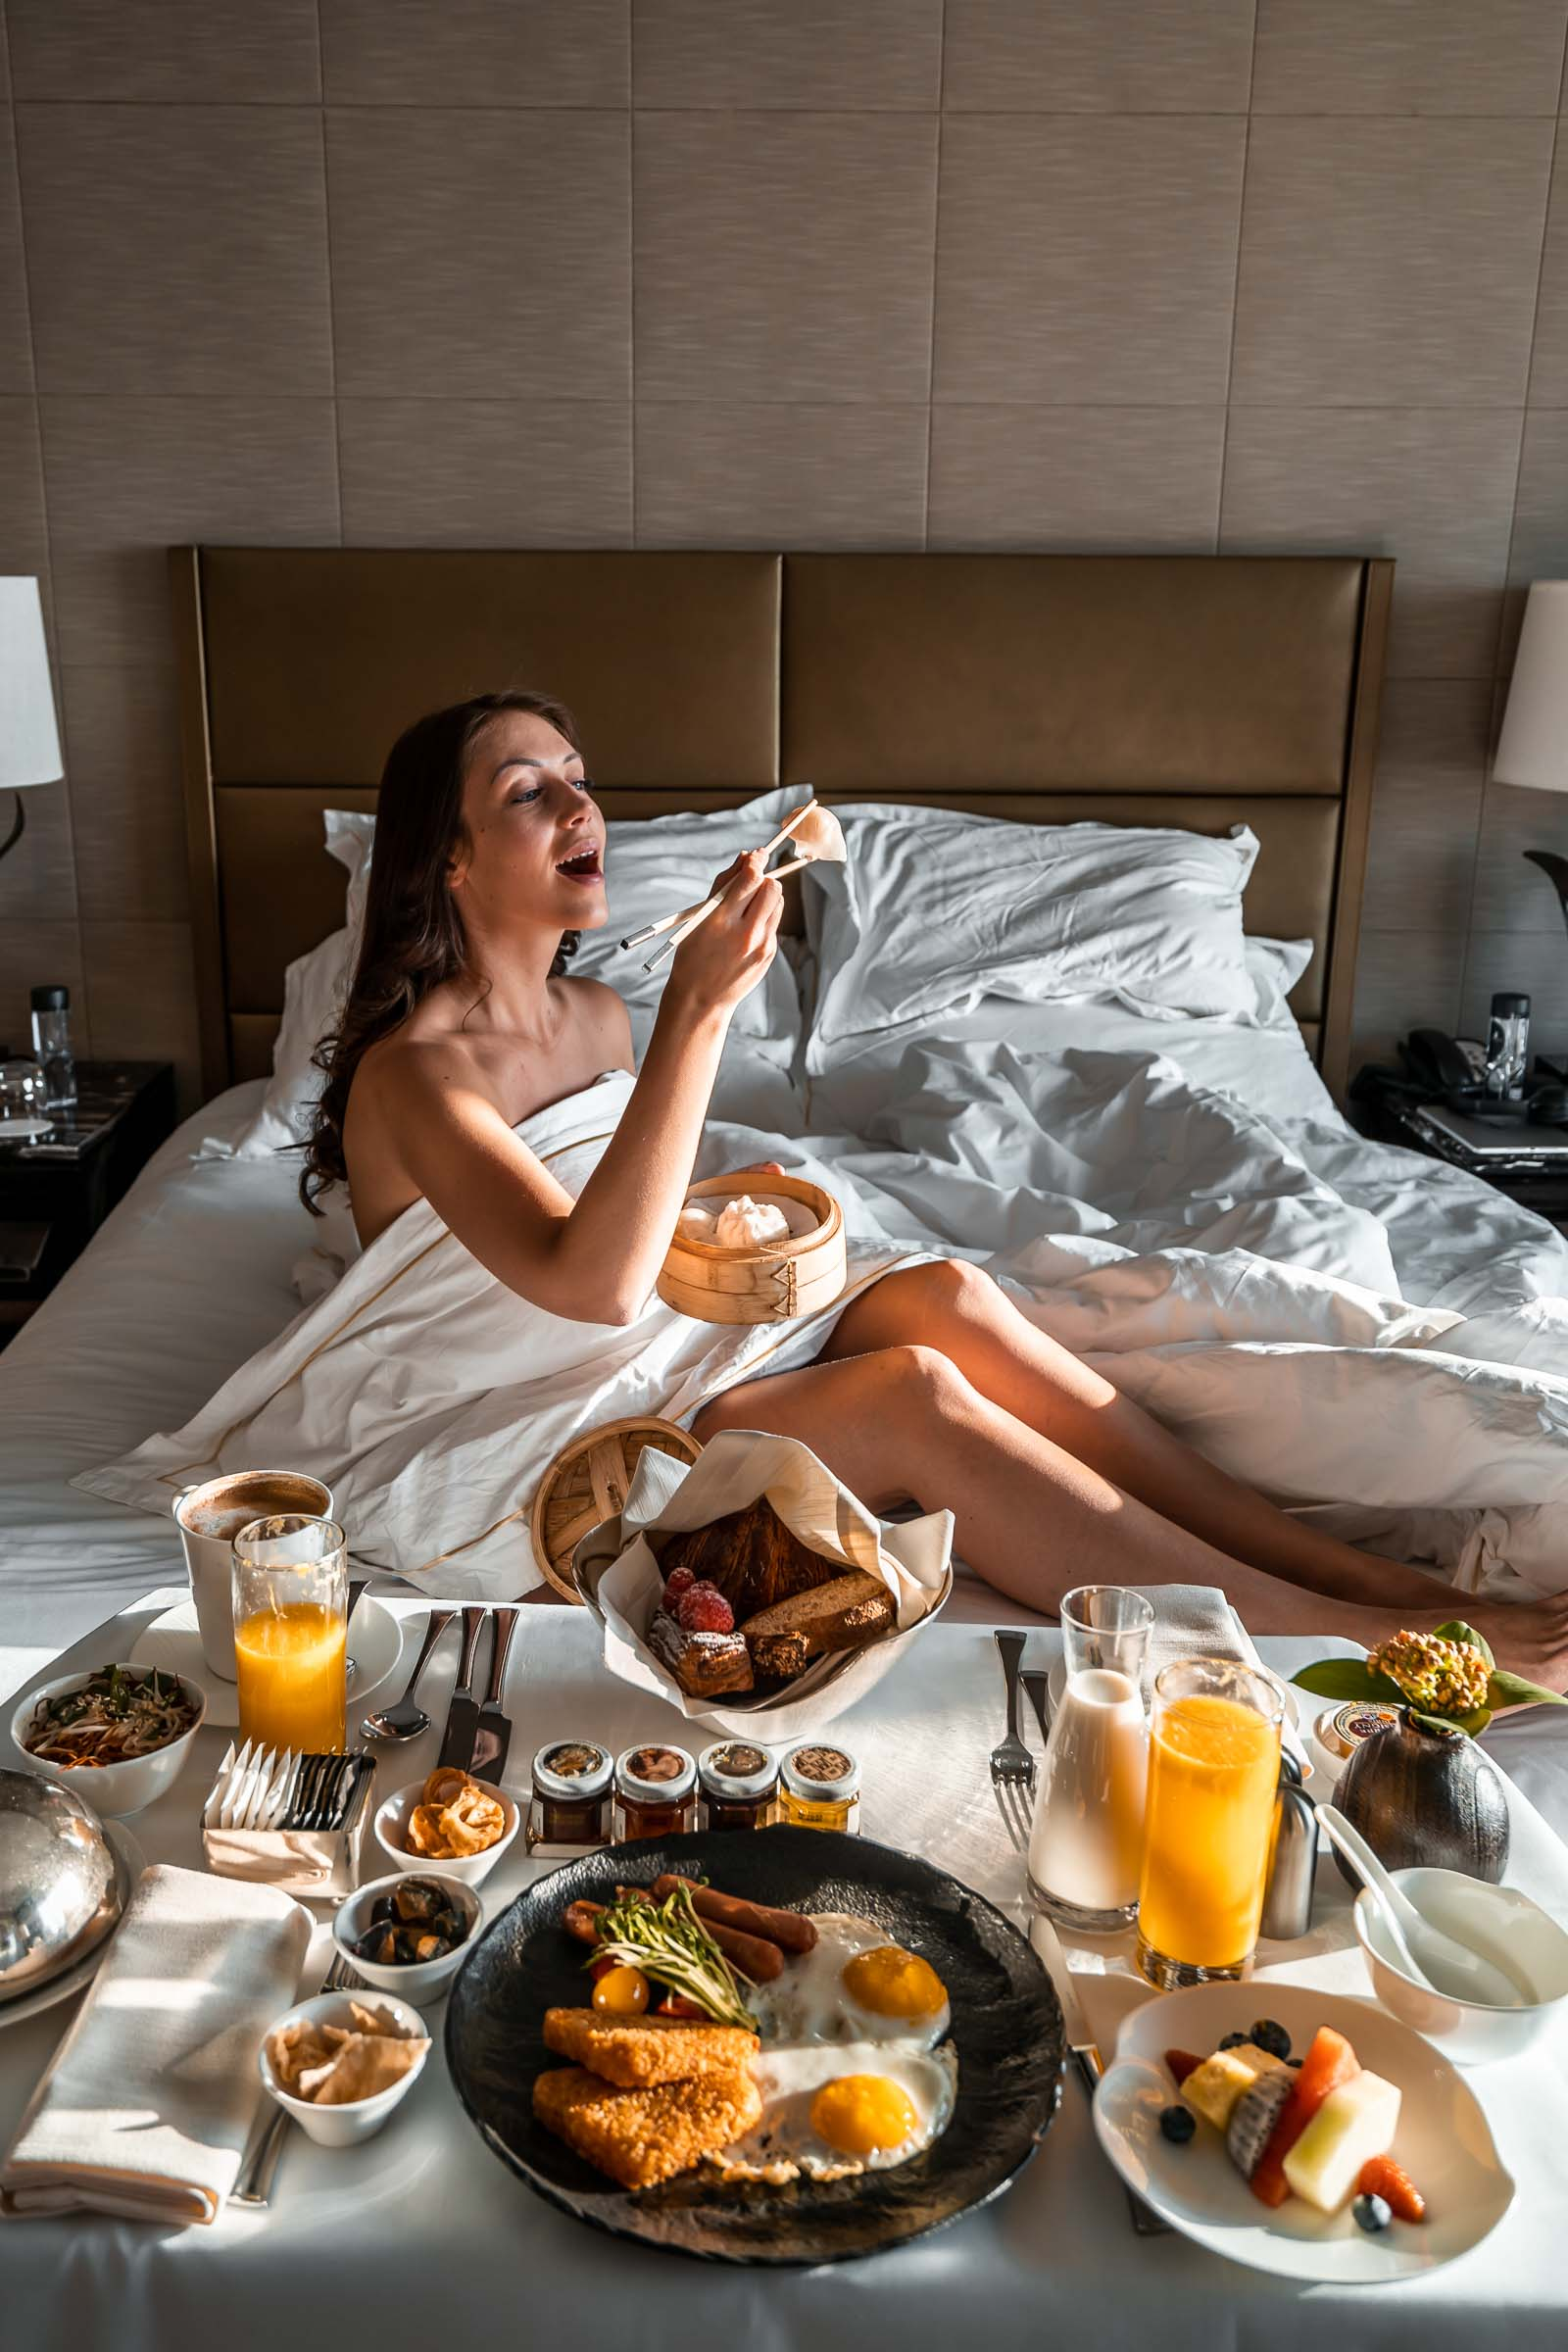 Girl sitting in the middle of the bed enjoying her breakfast